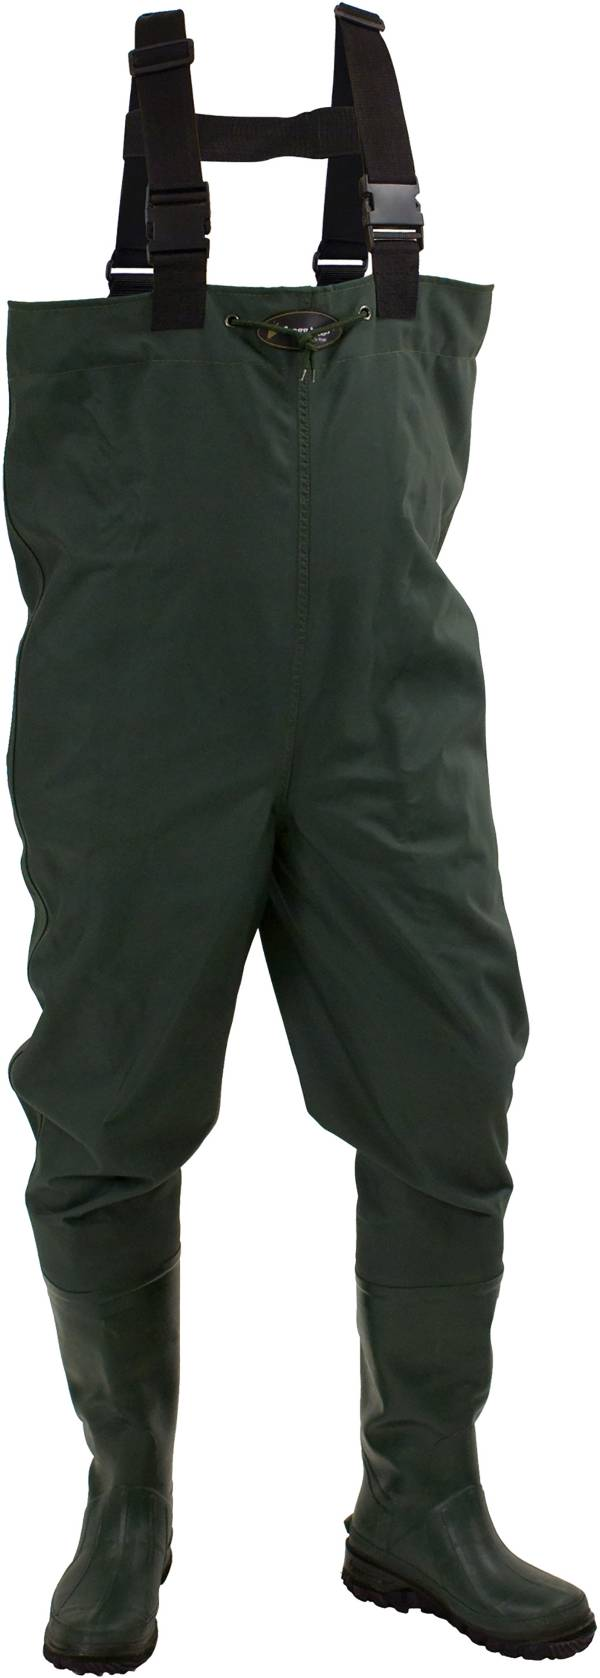 frogg toggs Cascades 2-Ply Cleated Chest Waders product image